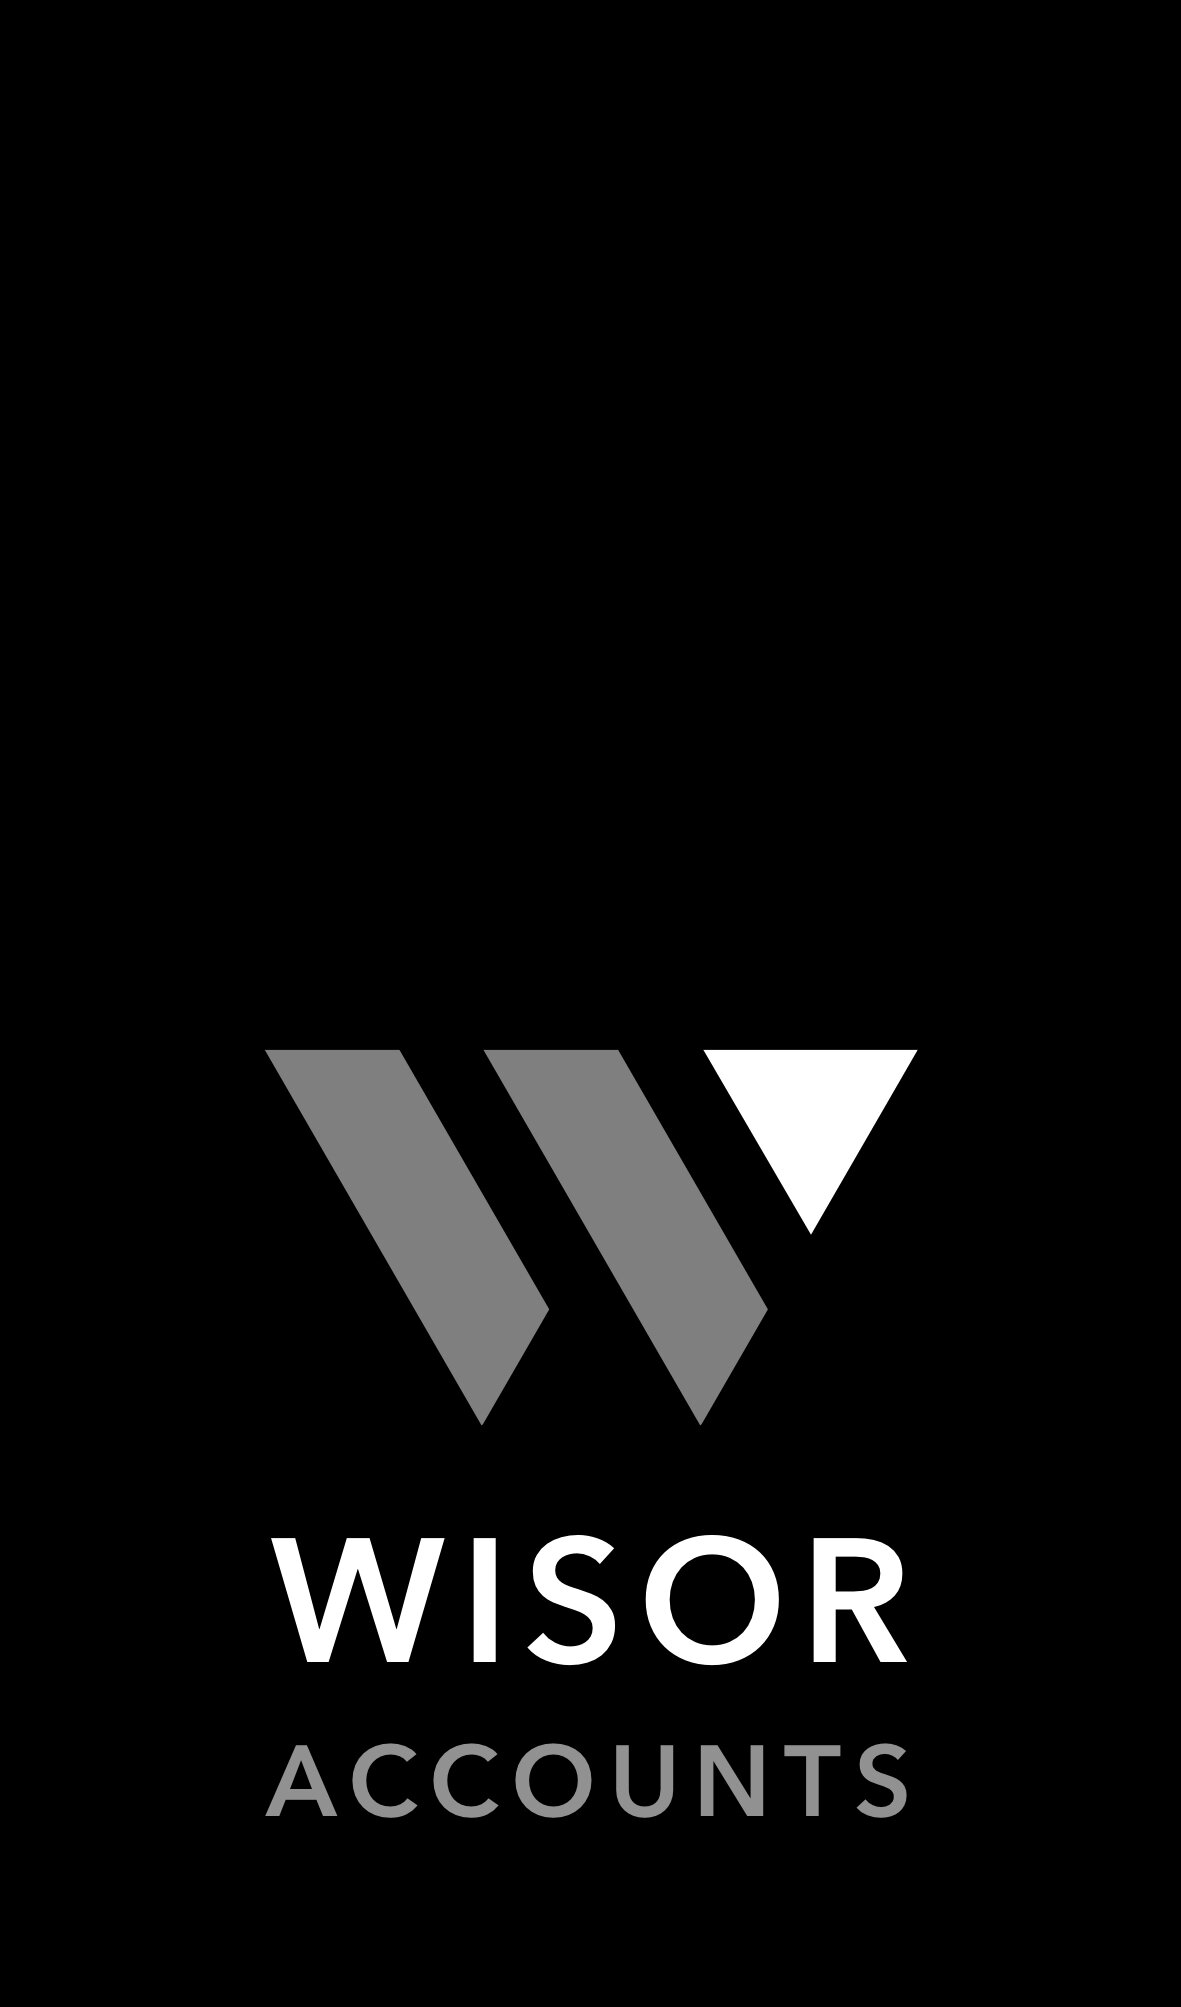 Wisor Accounts Document Logo.pdf  For download click on image.